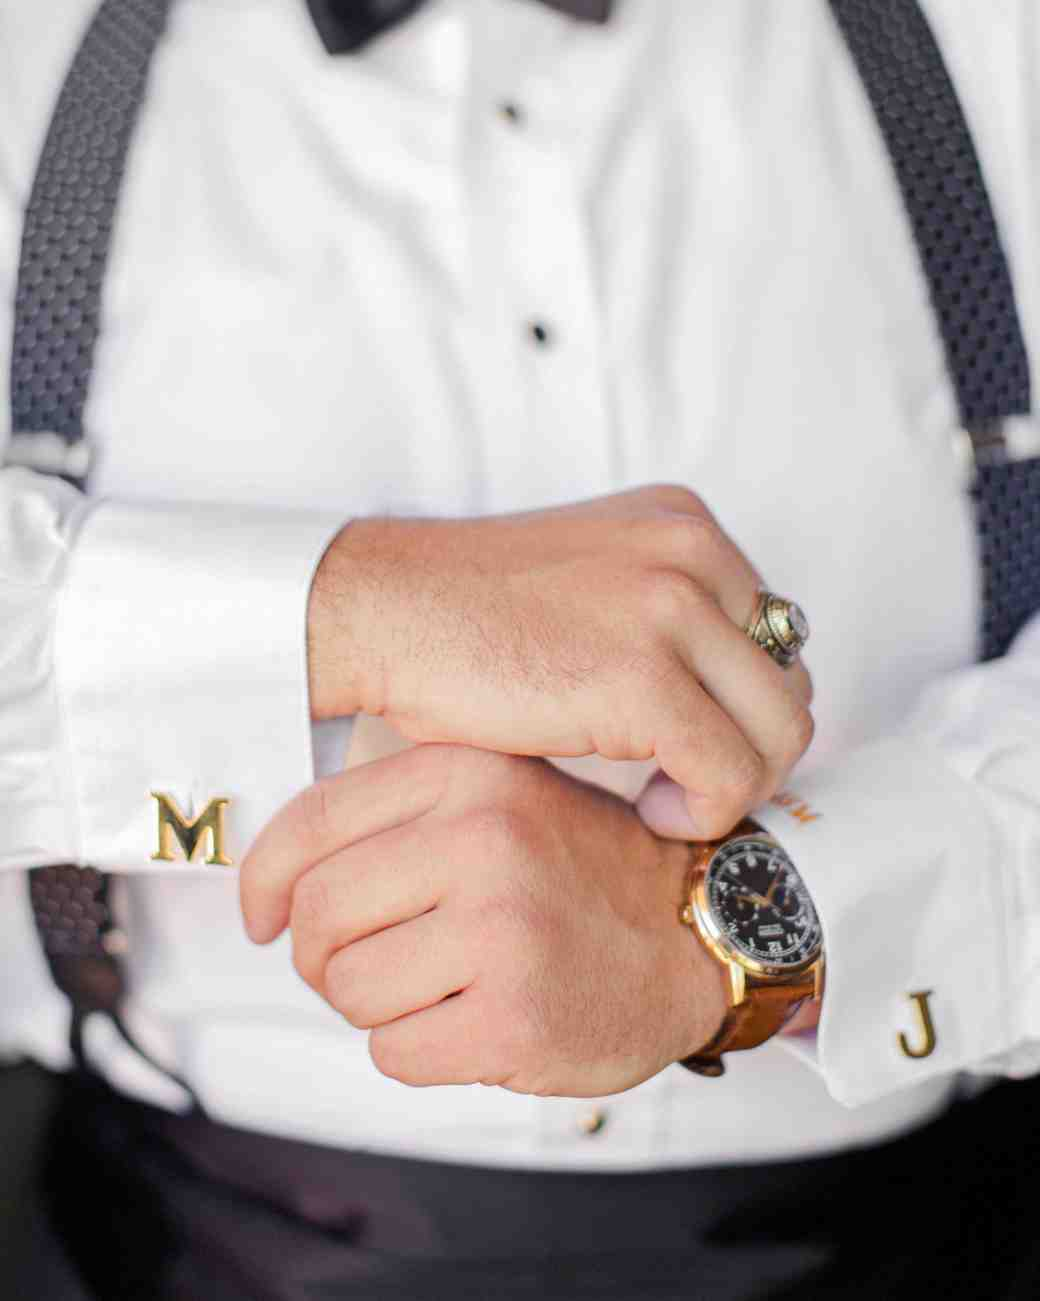 carey jared wedding cufflinks